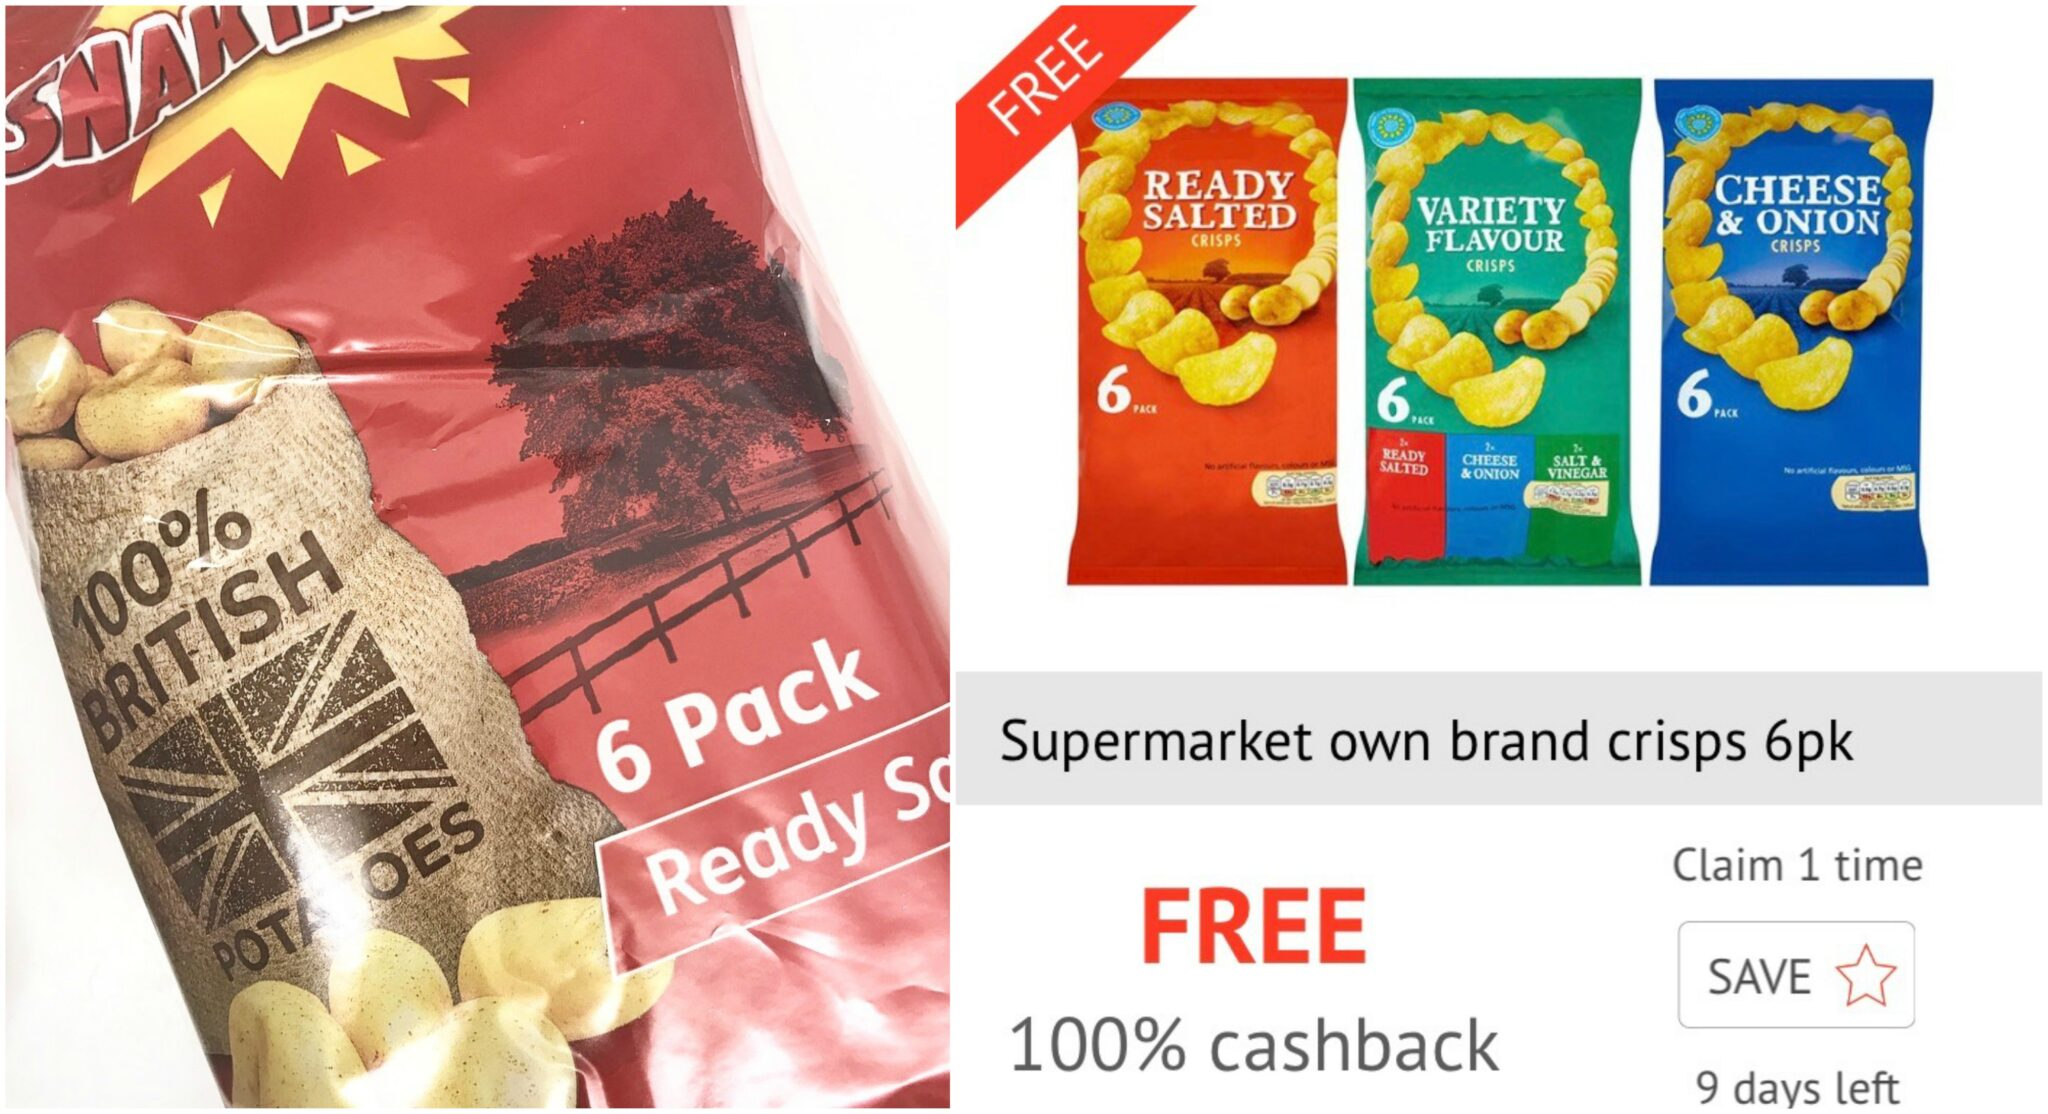 Free crisps on checkoutsmart